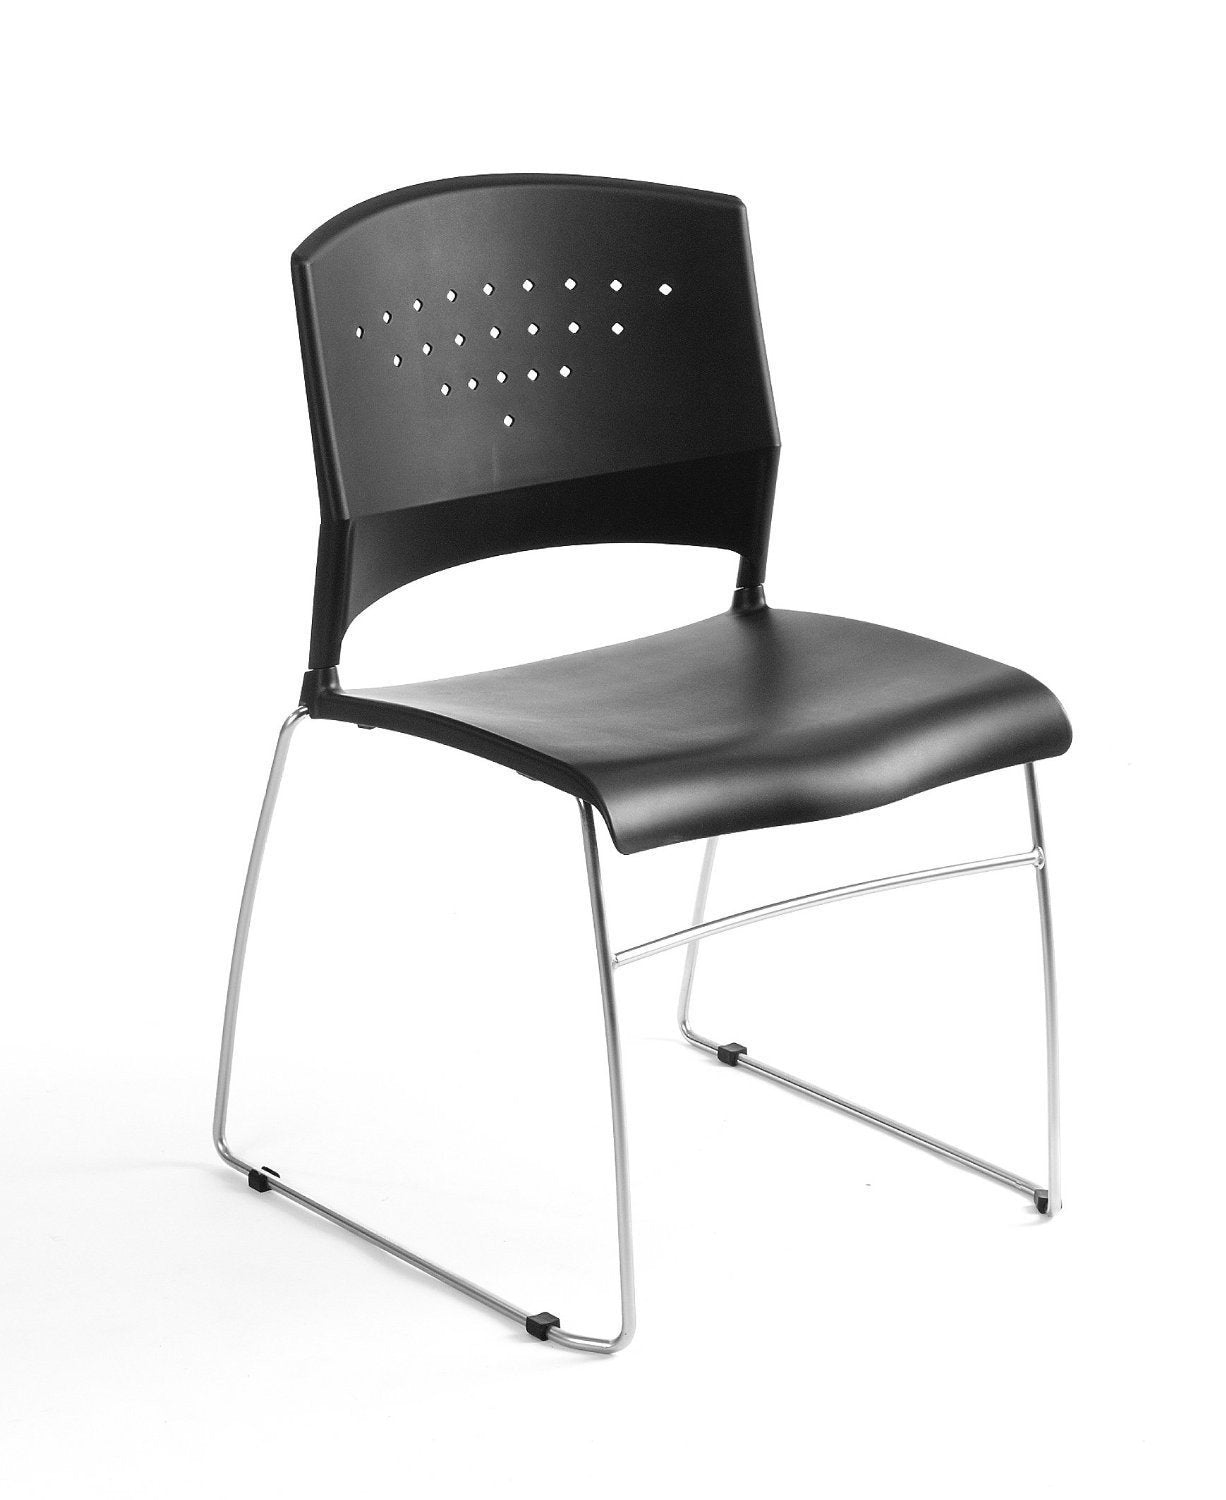 Boss Office Products B1400-BK-2 Boss Black Stack Chair With Chrome Frame 2 Pcs Pack from Boss Office Products